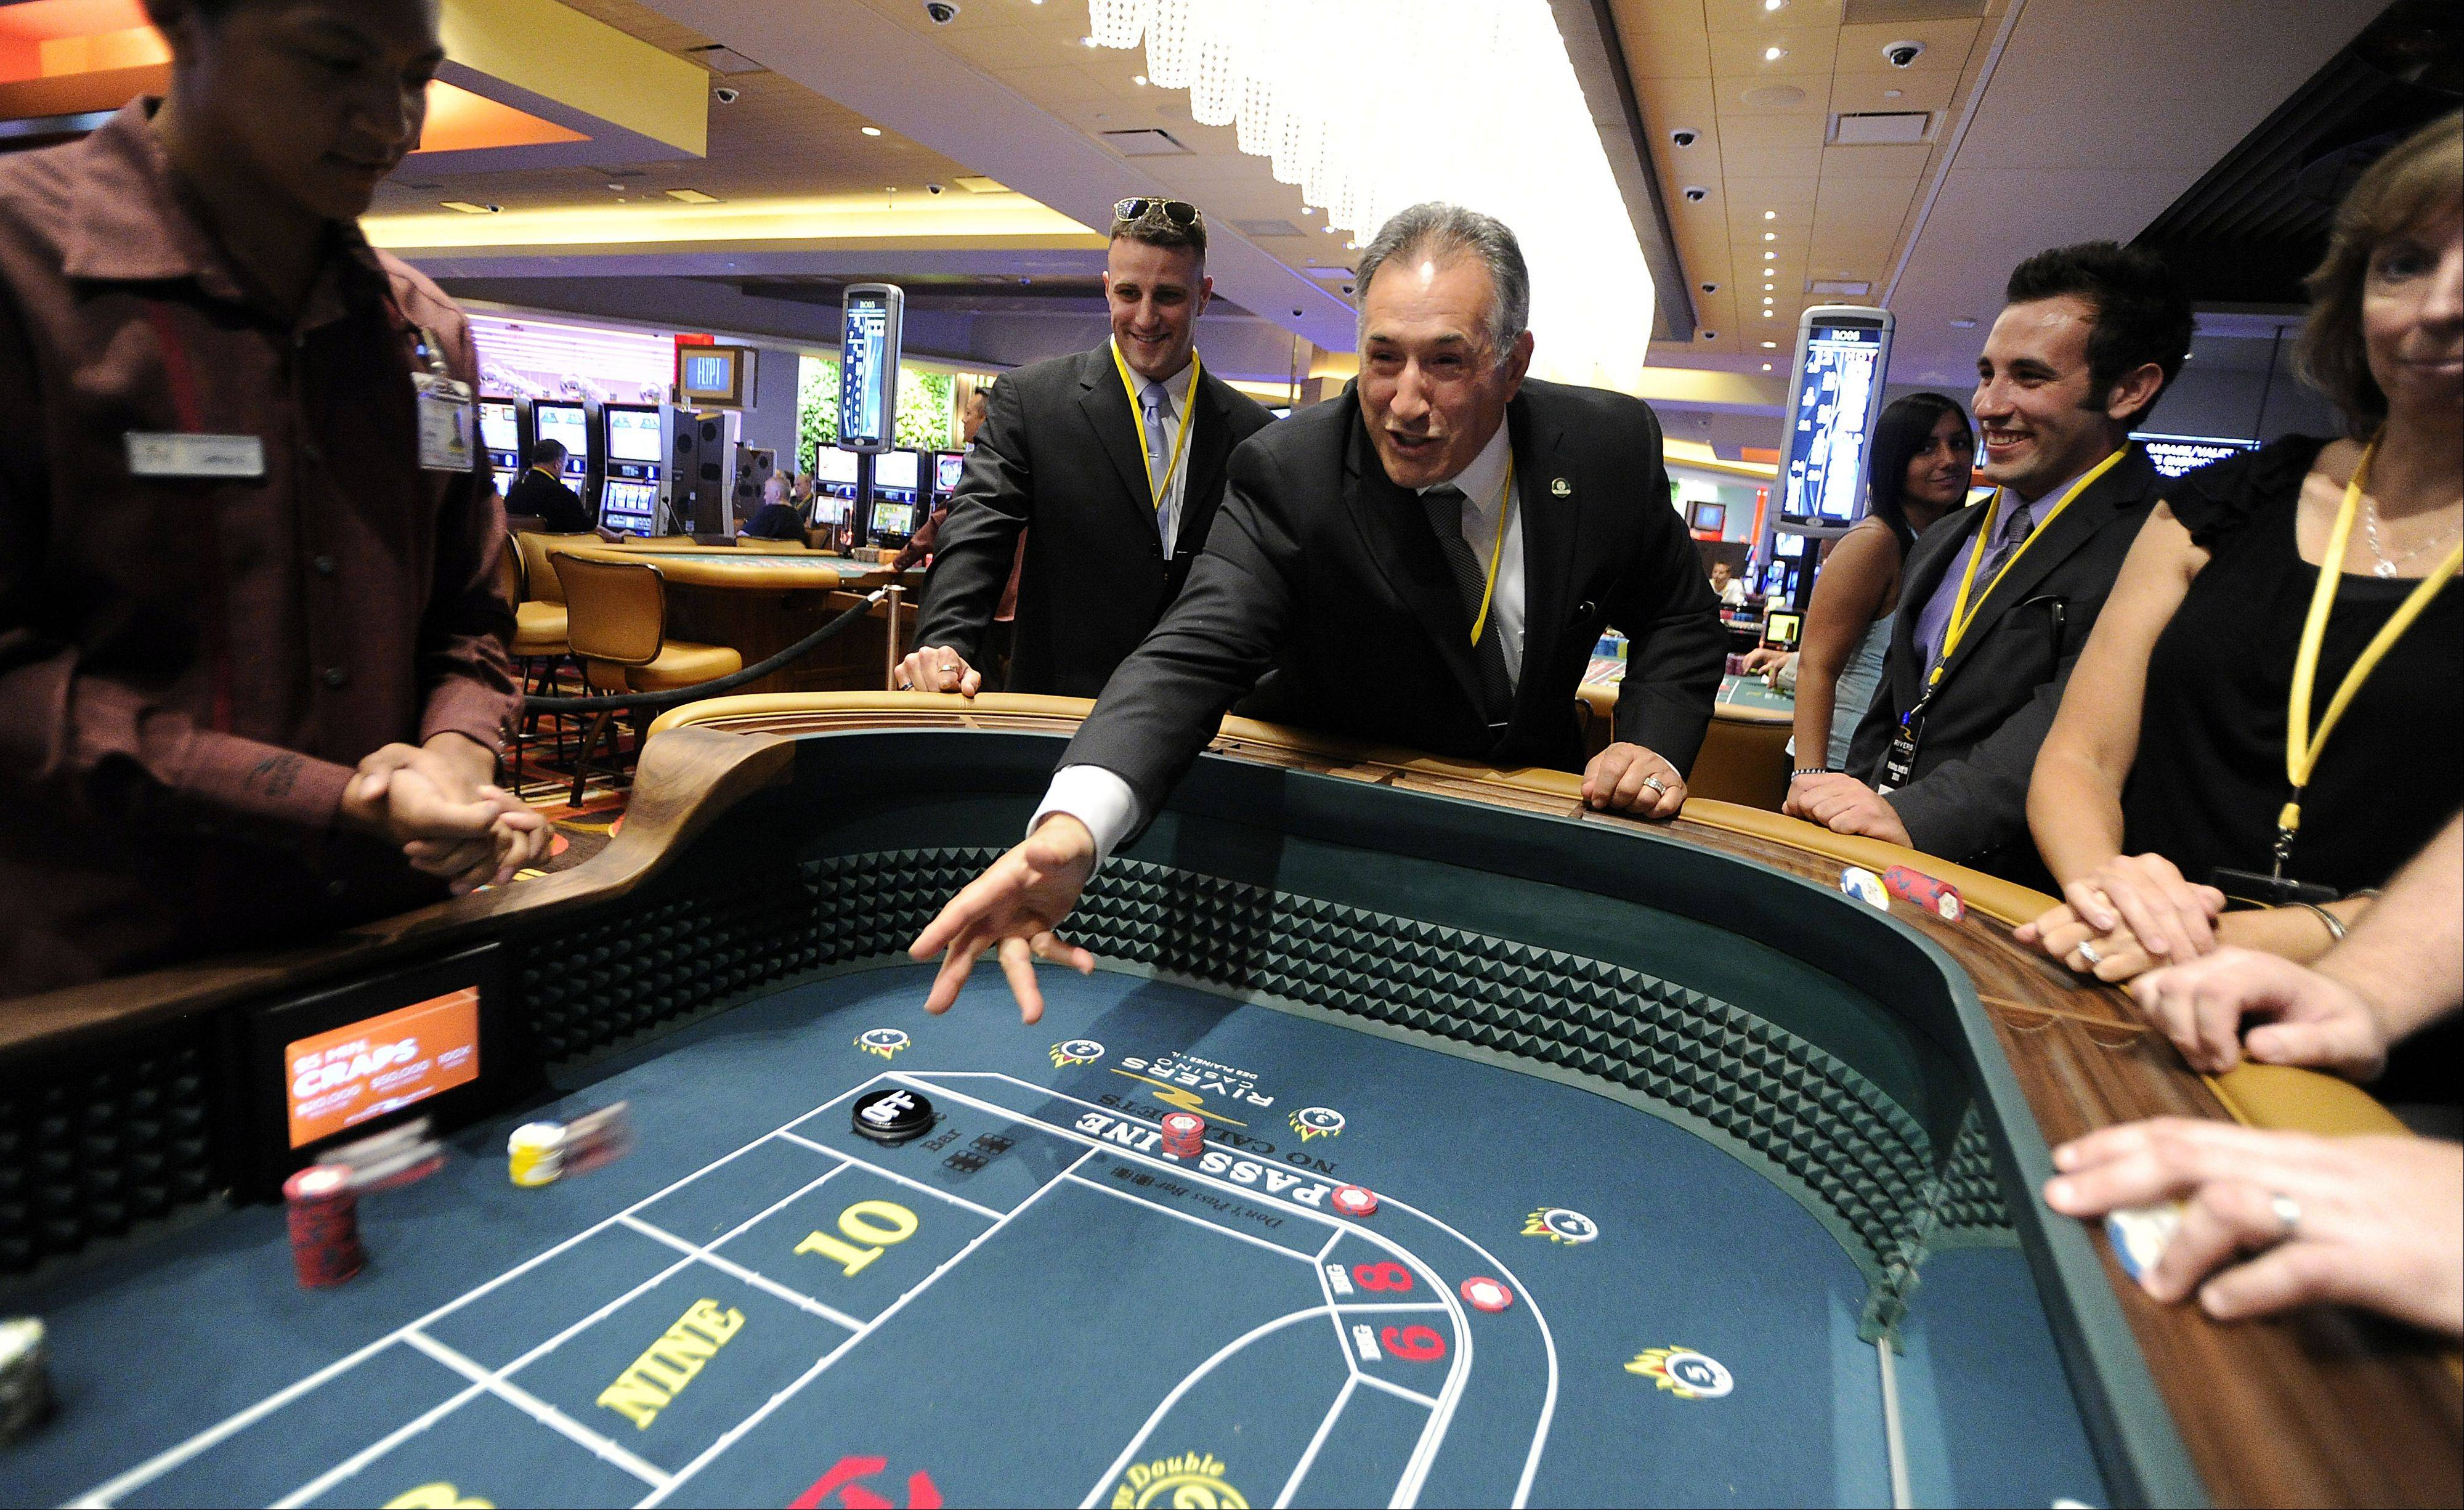 How Des Plaines won the 10th casino license after an initial loss